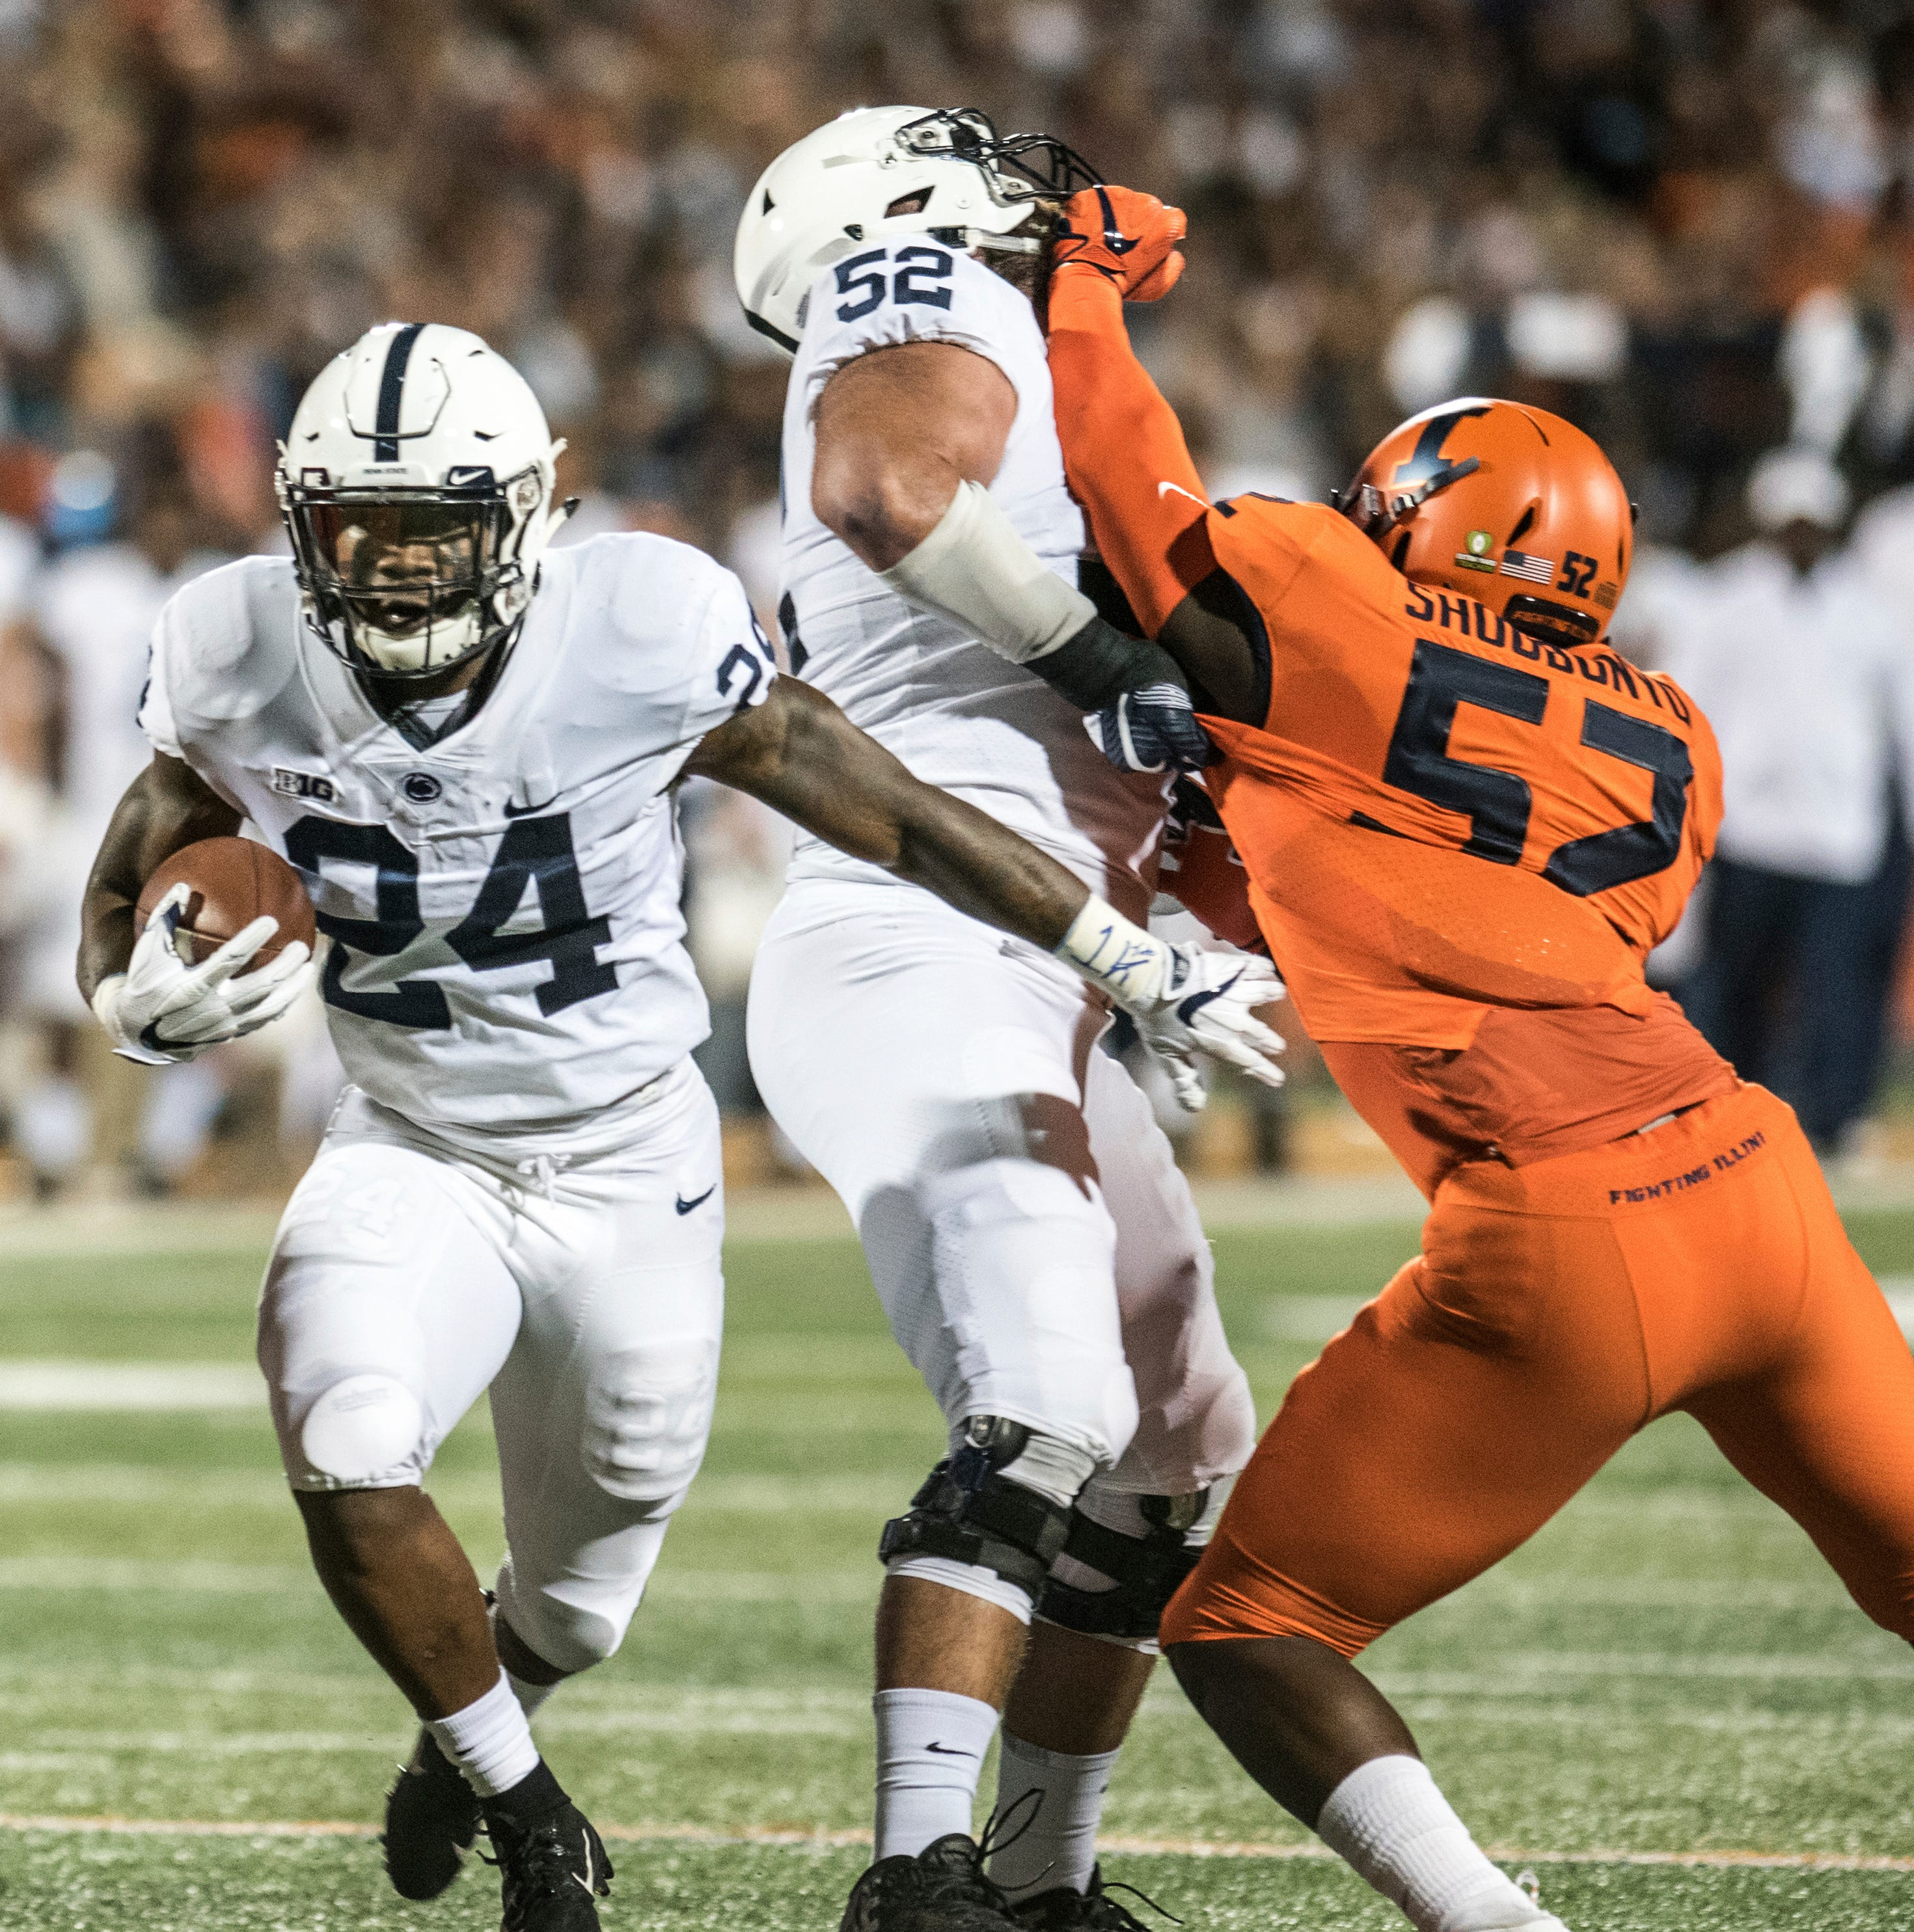 Penn State running back Miles Sanders (24) carries the ball against Illinois during the first half of an NCAA college football game Friday, Sept. 21, 2018, in Champaign, Ill. (AP Photo/Holly Hart)